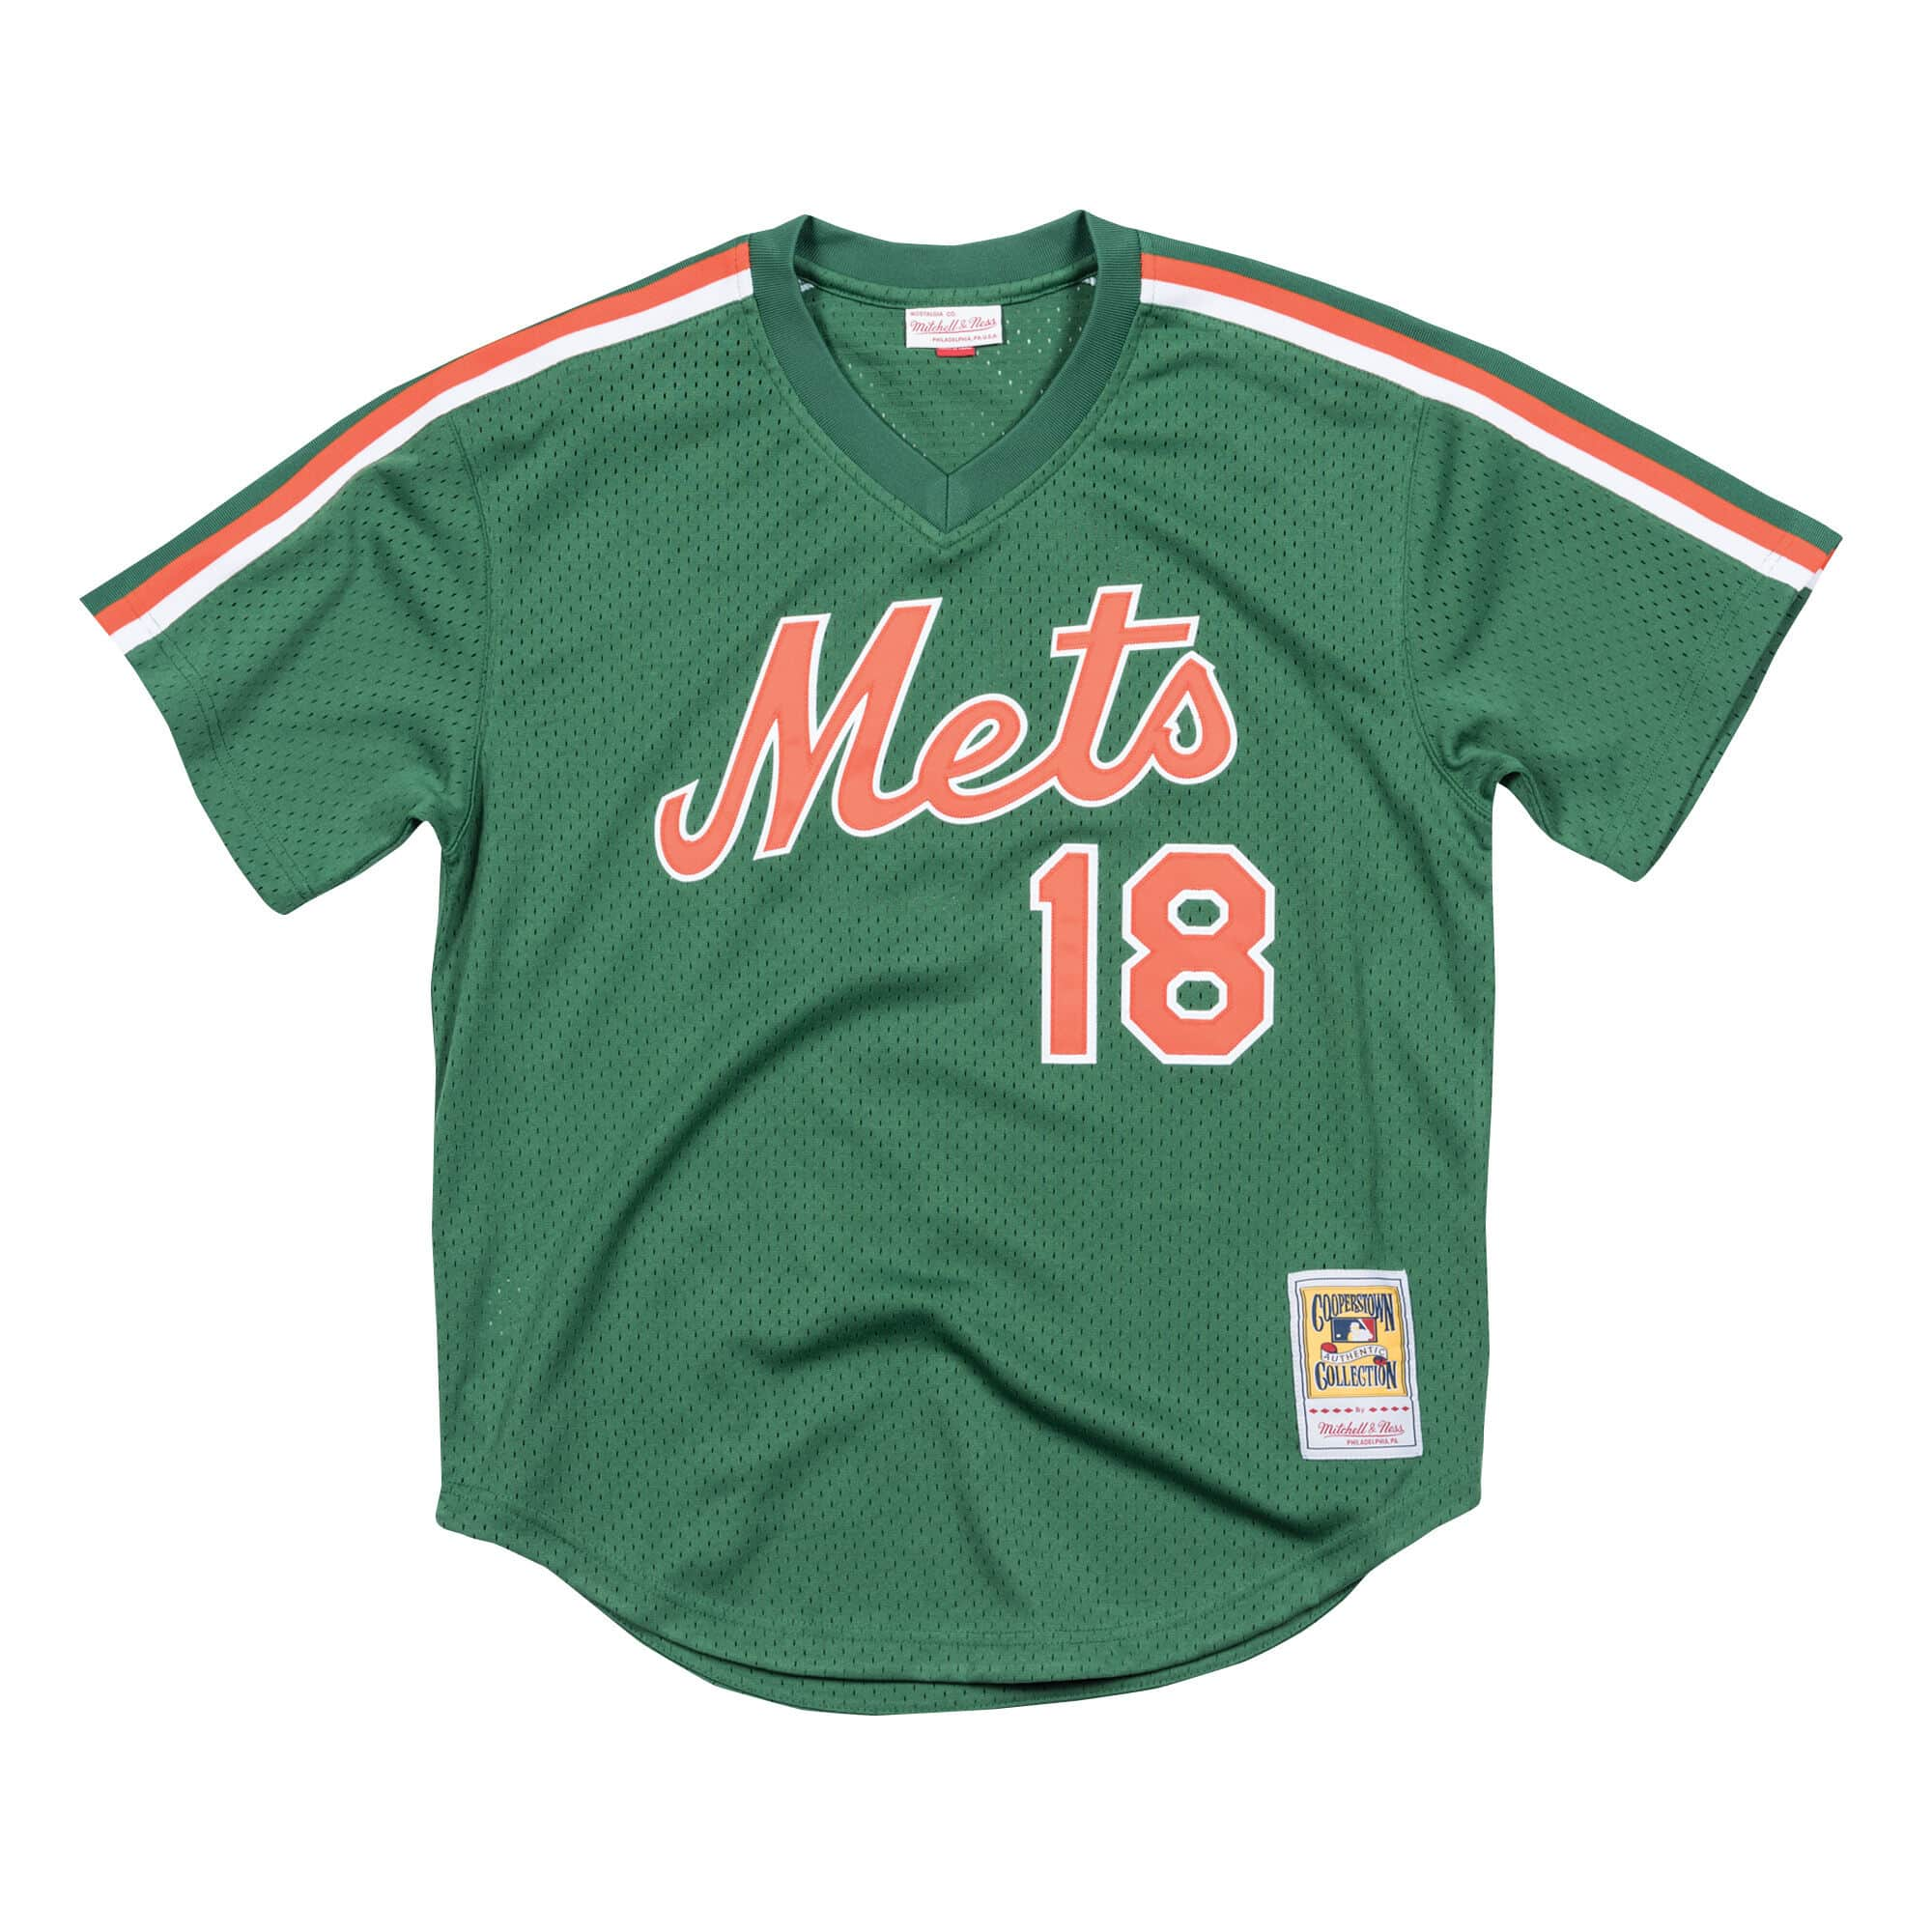 Authentic Mesh BP Jersey New York Mets 1988 Darryl Strawberry